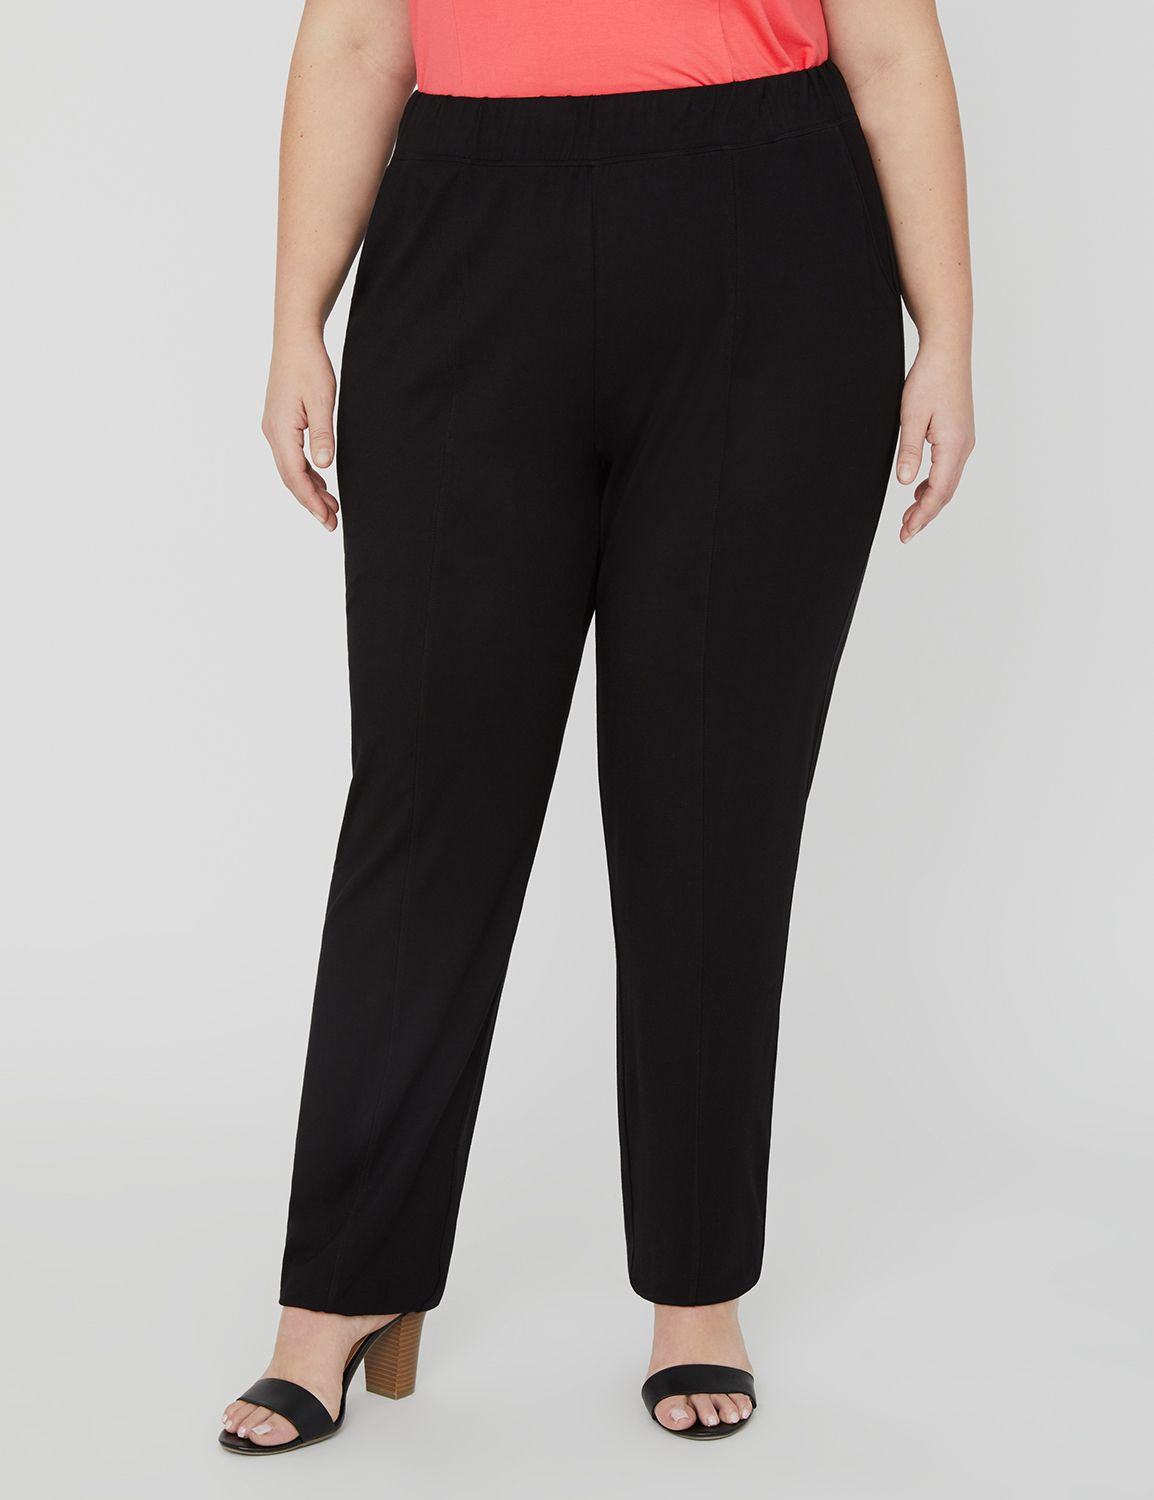 AnyWear Straight-Leg Pant 1088660 Anywear Rayon Span Straight MP-300094799